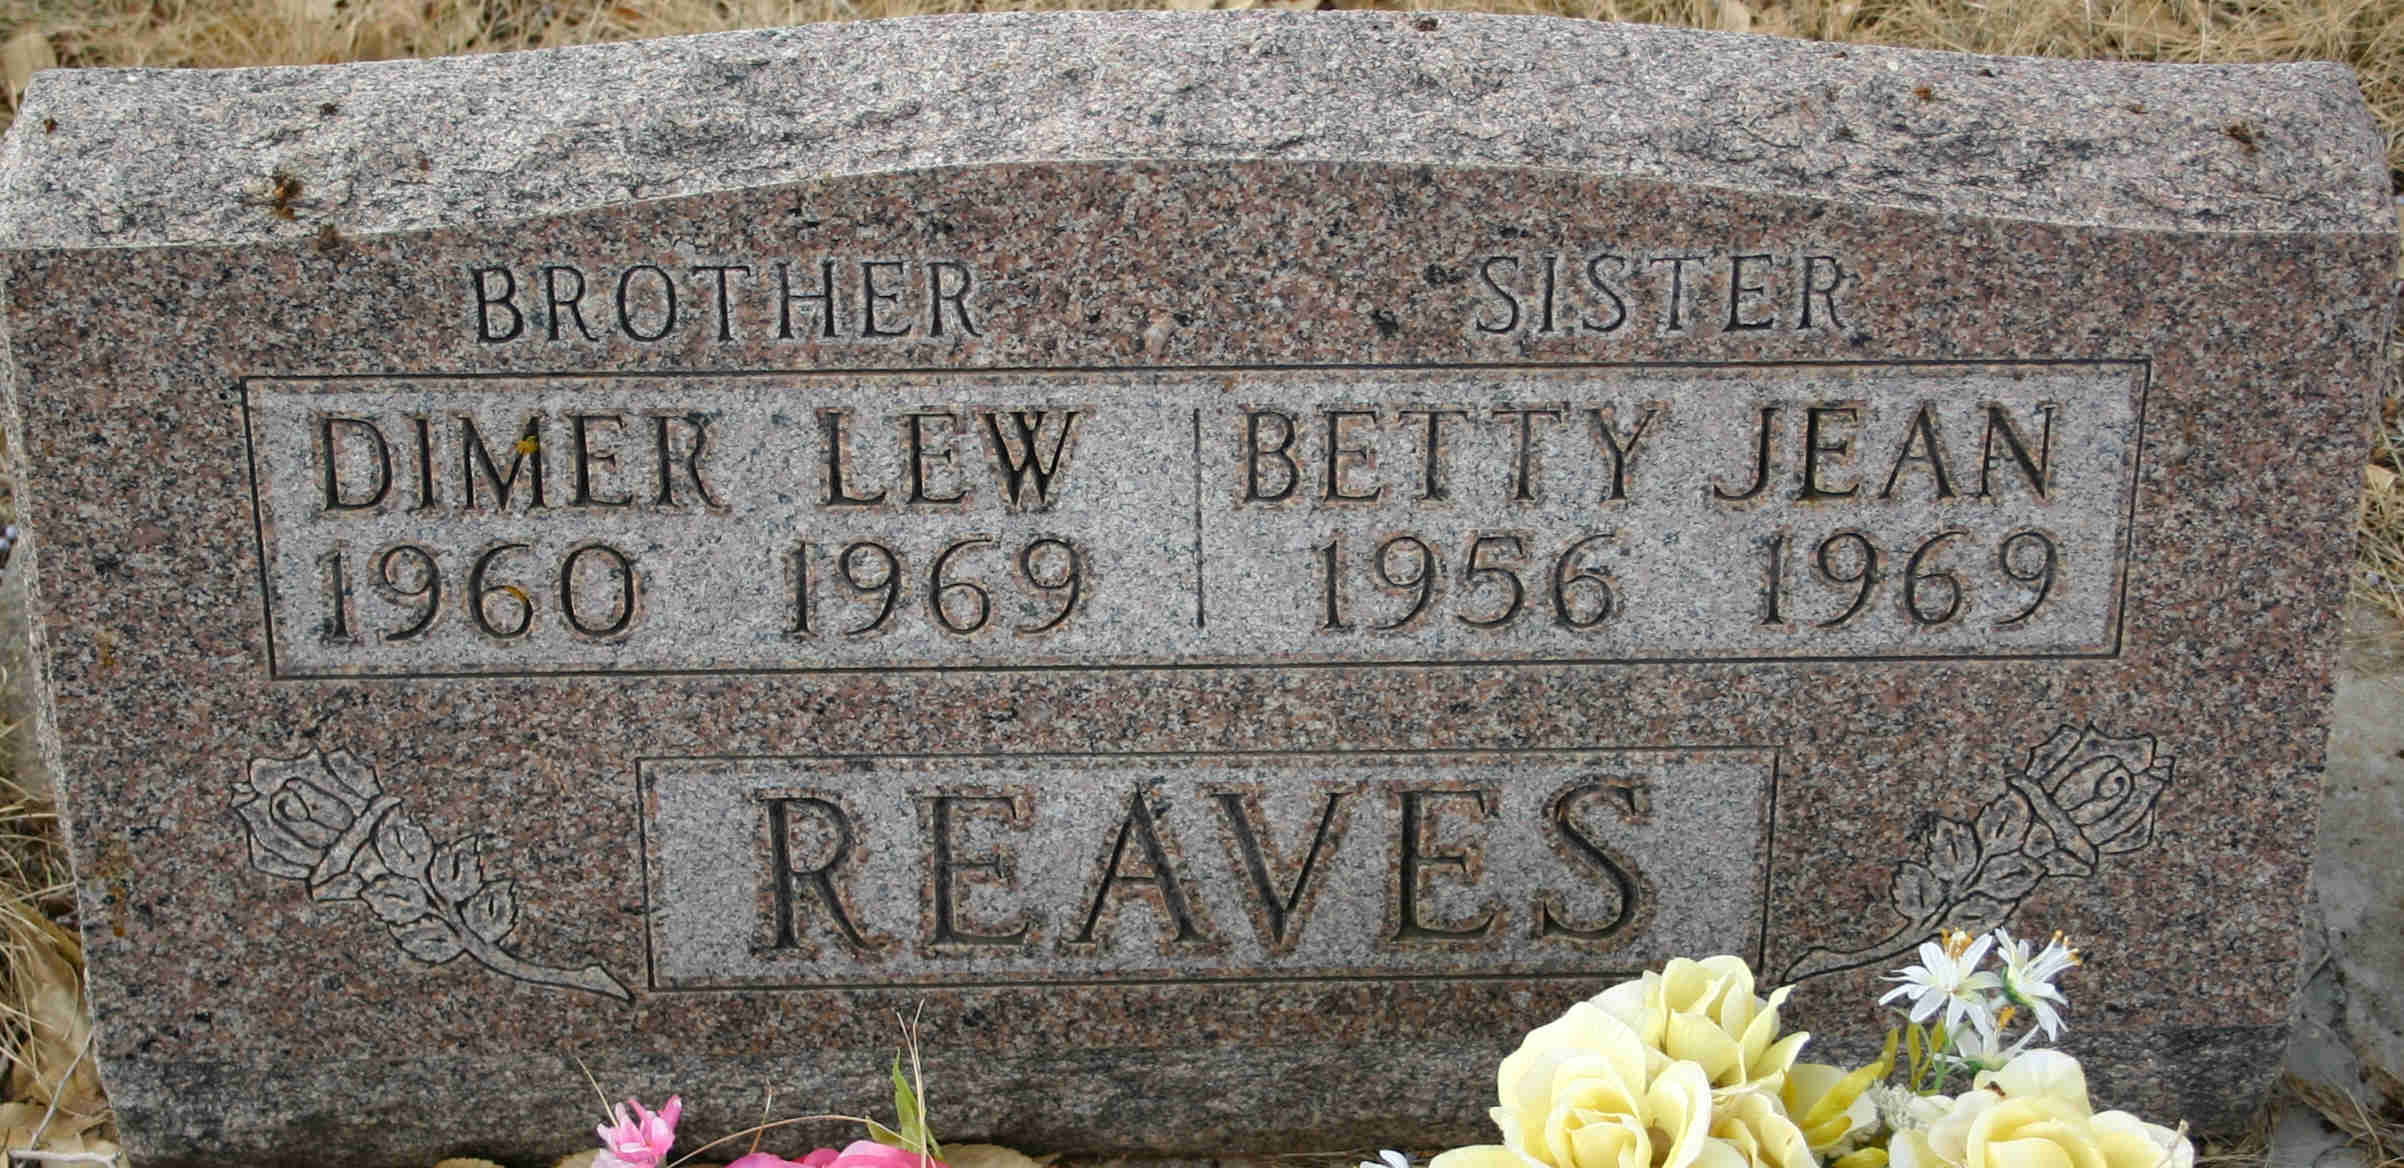 Dimer Lew Reaves and Betty Jean Reaves Headstone